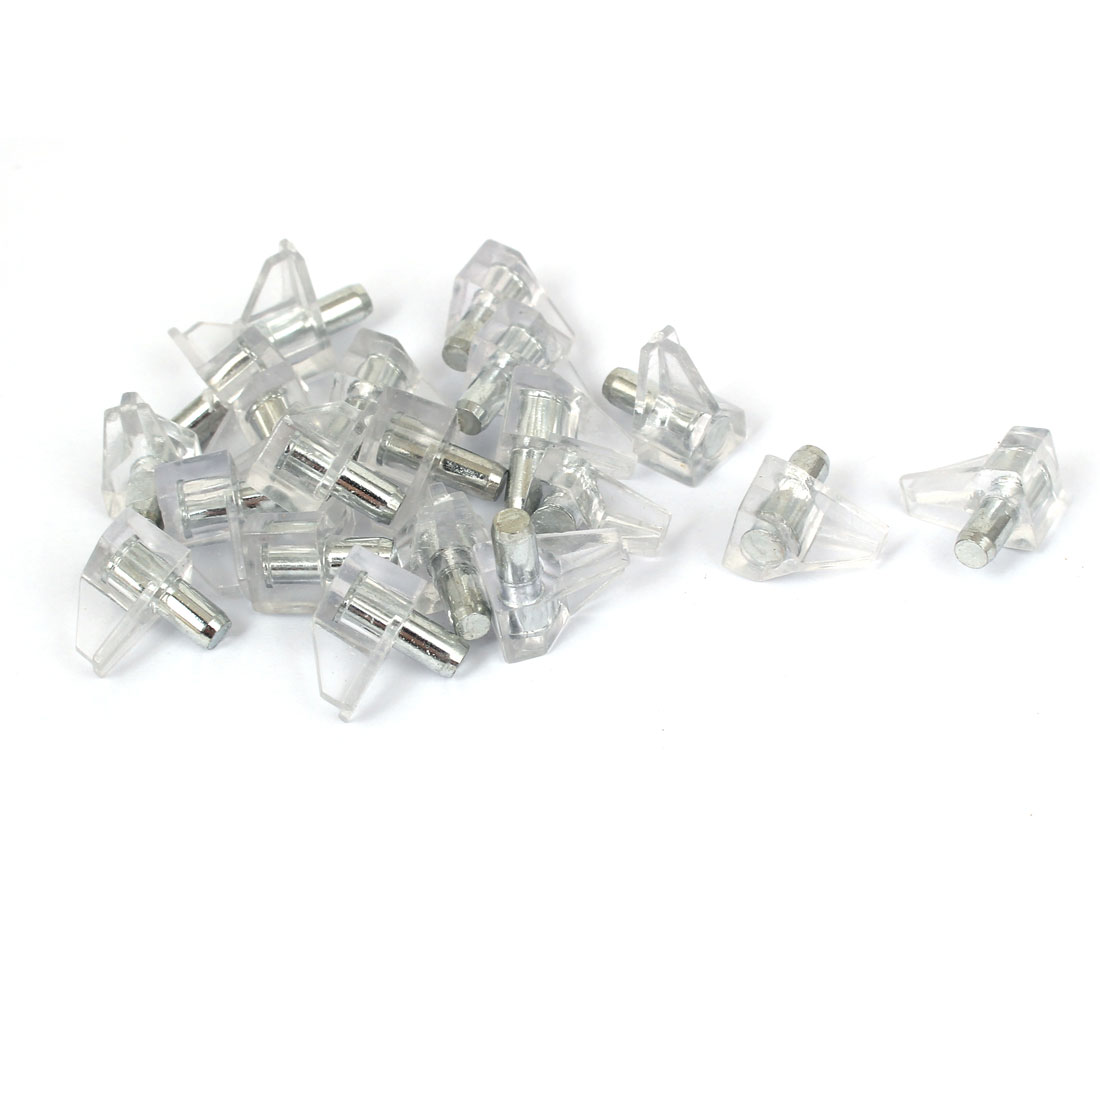 5mm Dia Support Peg Stud Pins 20 Pcs for Kitchen Shelf Cupboard Cabinet